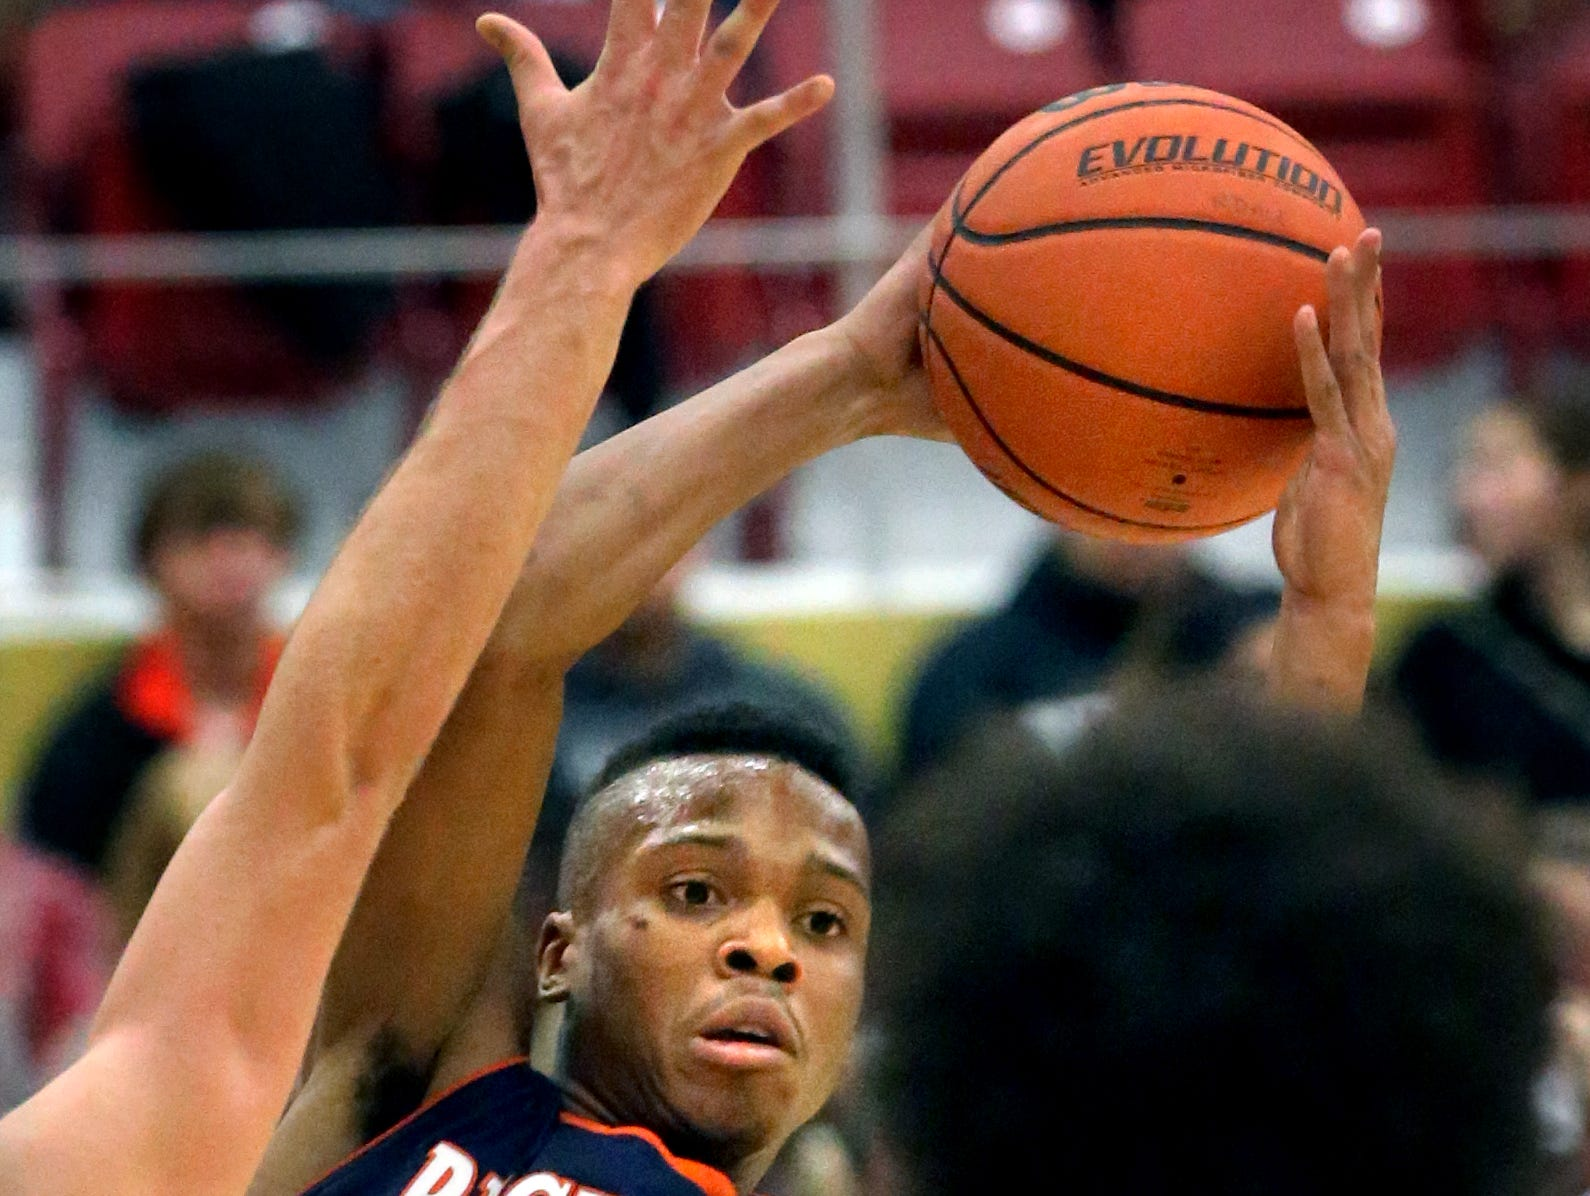 Blackman's Isaiah Hart looks for an open player as he is surrounded by Riverdale players in the first half of the game at Riverdale on Friday Jan. 9, 2015.